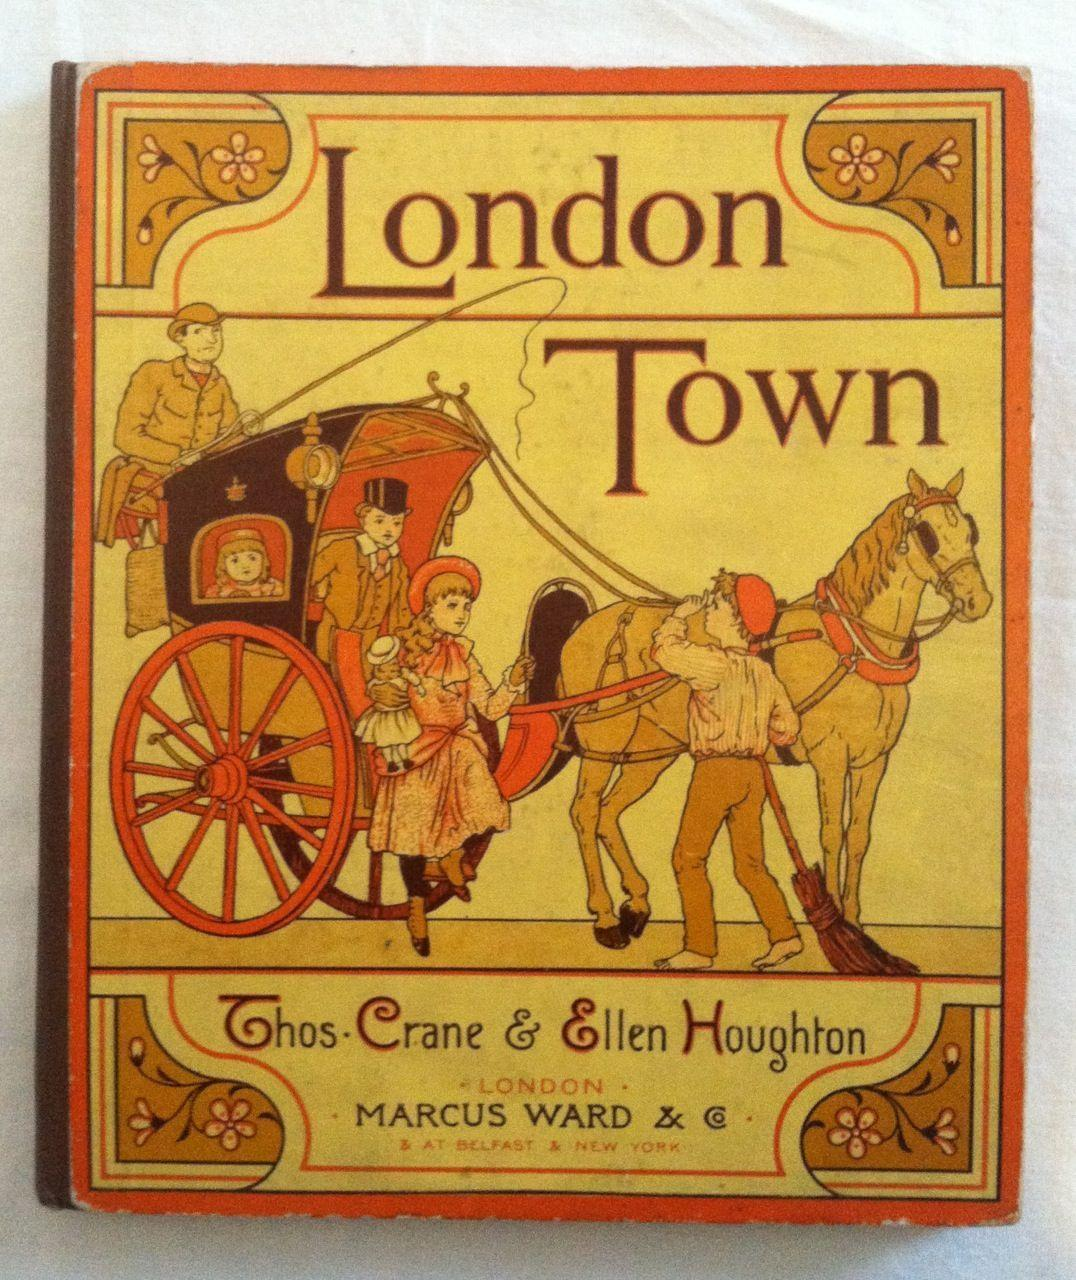 [Crane, Thomas] London Town Houghton, Ellen and Crane, Thomas Original color pictorial paper covered boards, cloth spine. Color illustrations throughout in chromolithography by THOMAS CRANE (Walter Crane's brothe